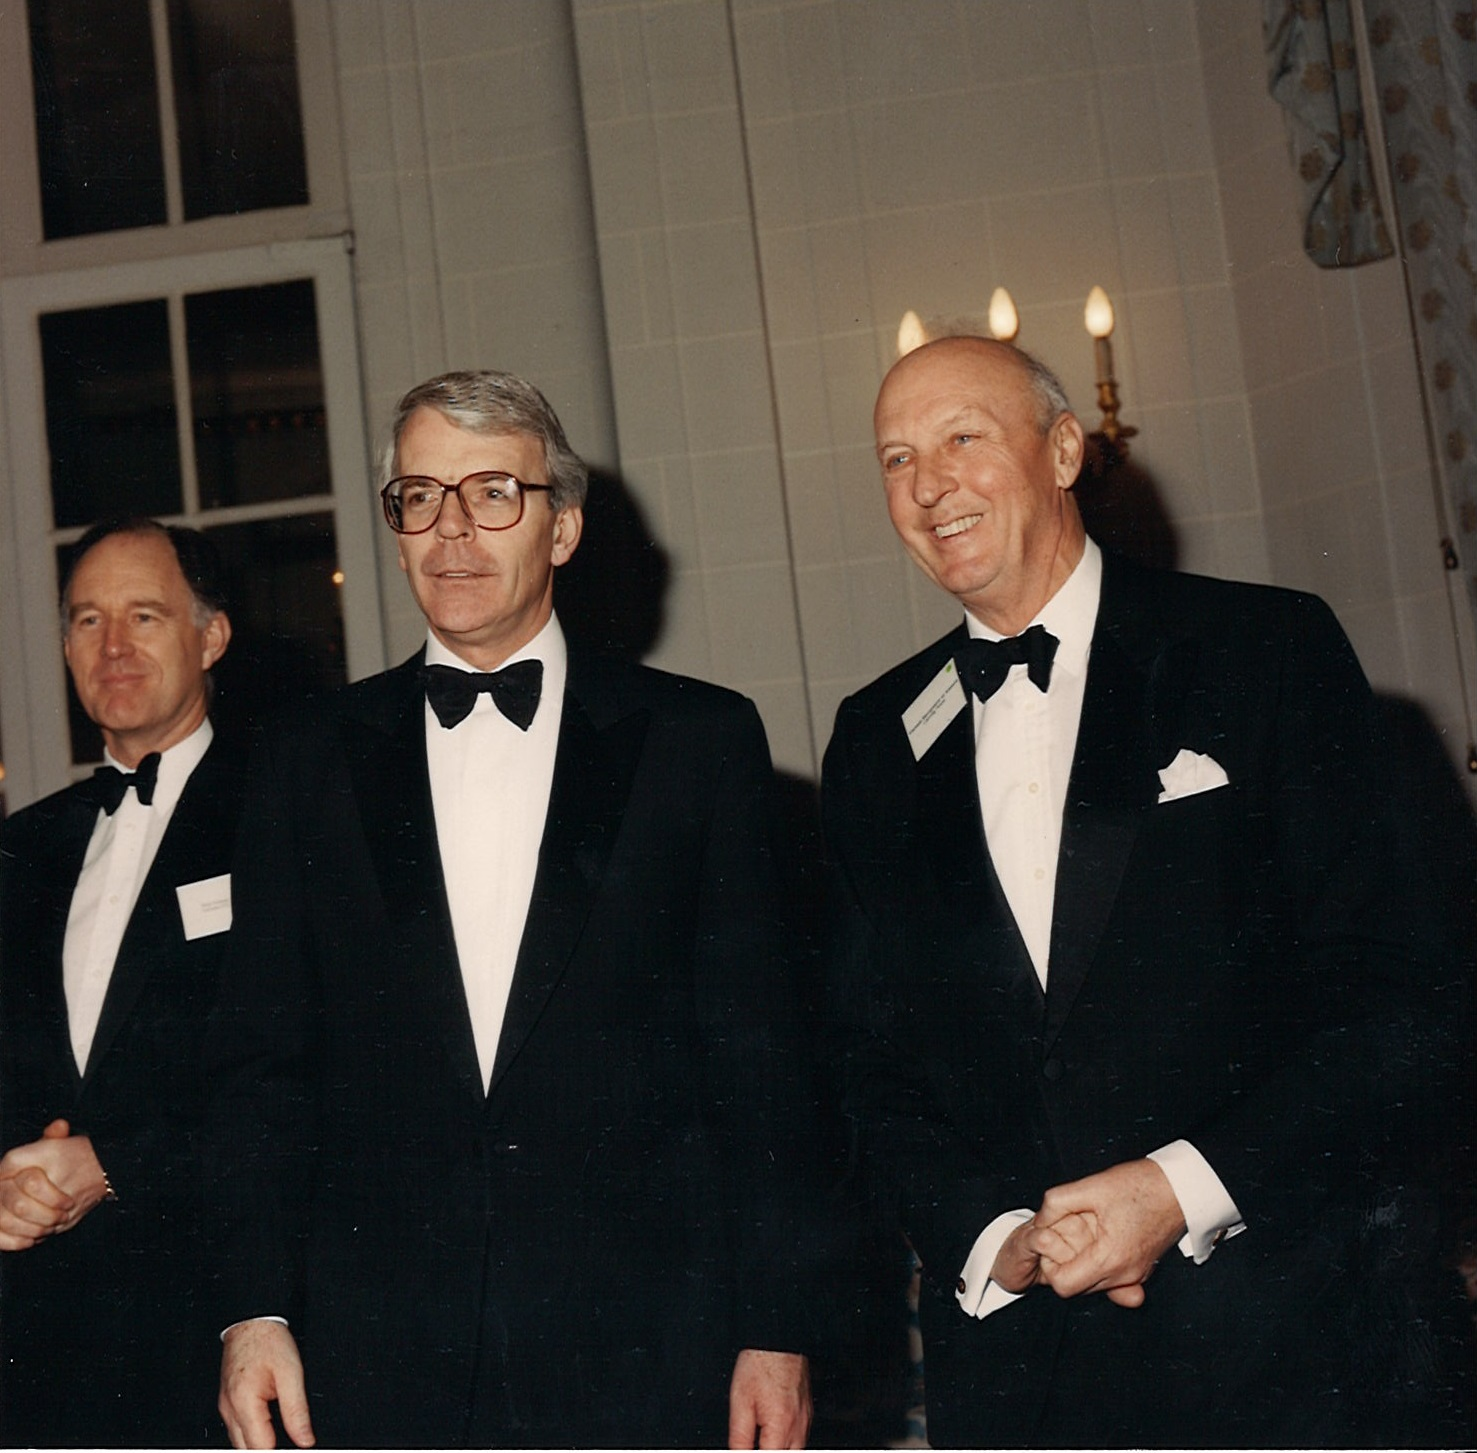 Viscount Montgomery with Sir John Major at Canning House 1994 Gala Dinner